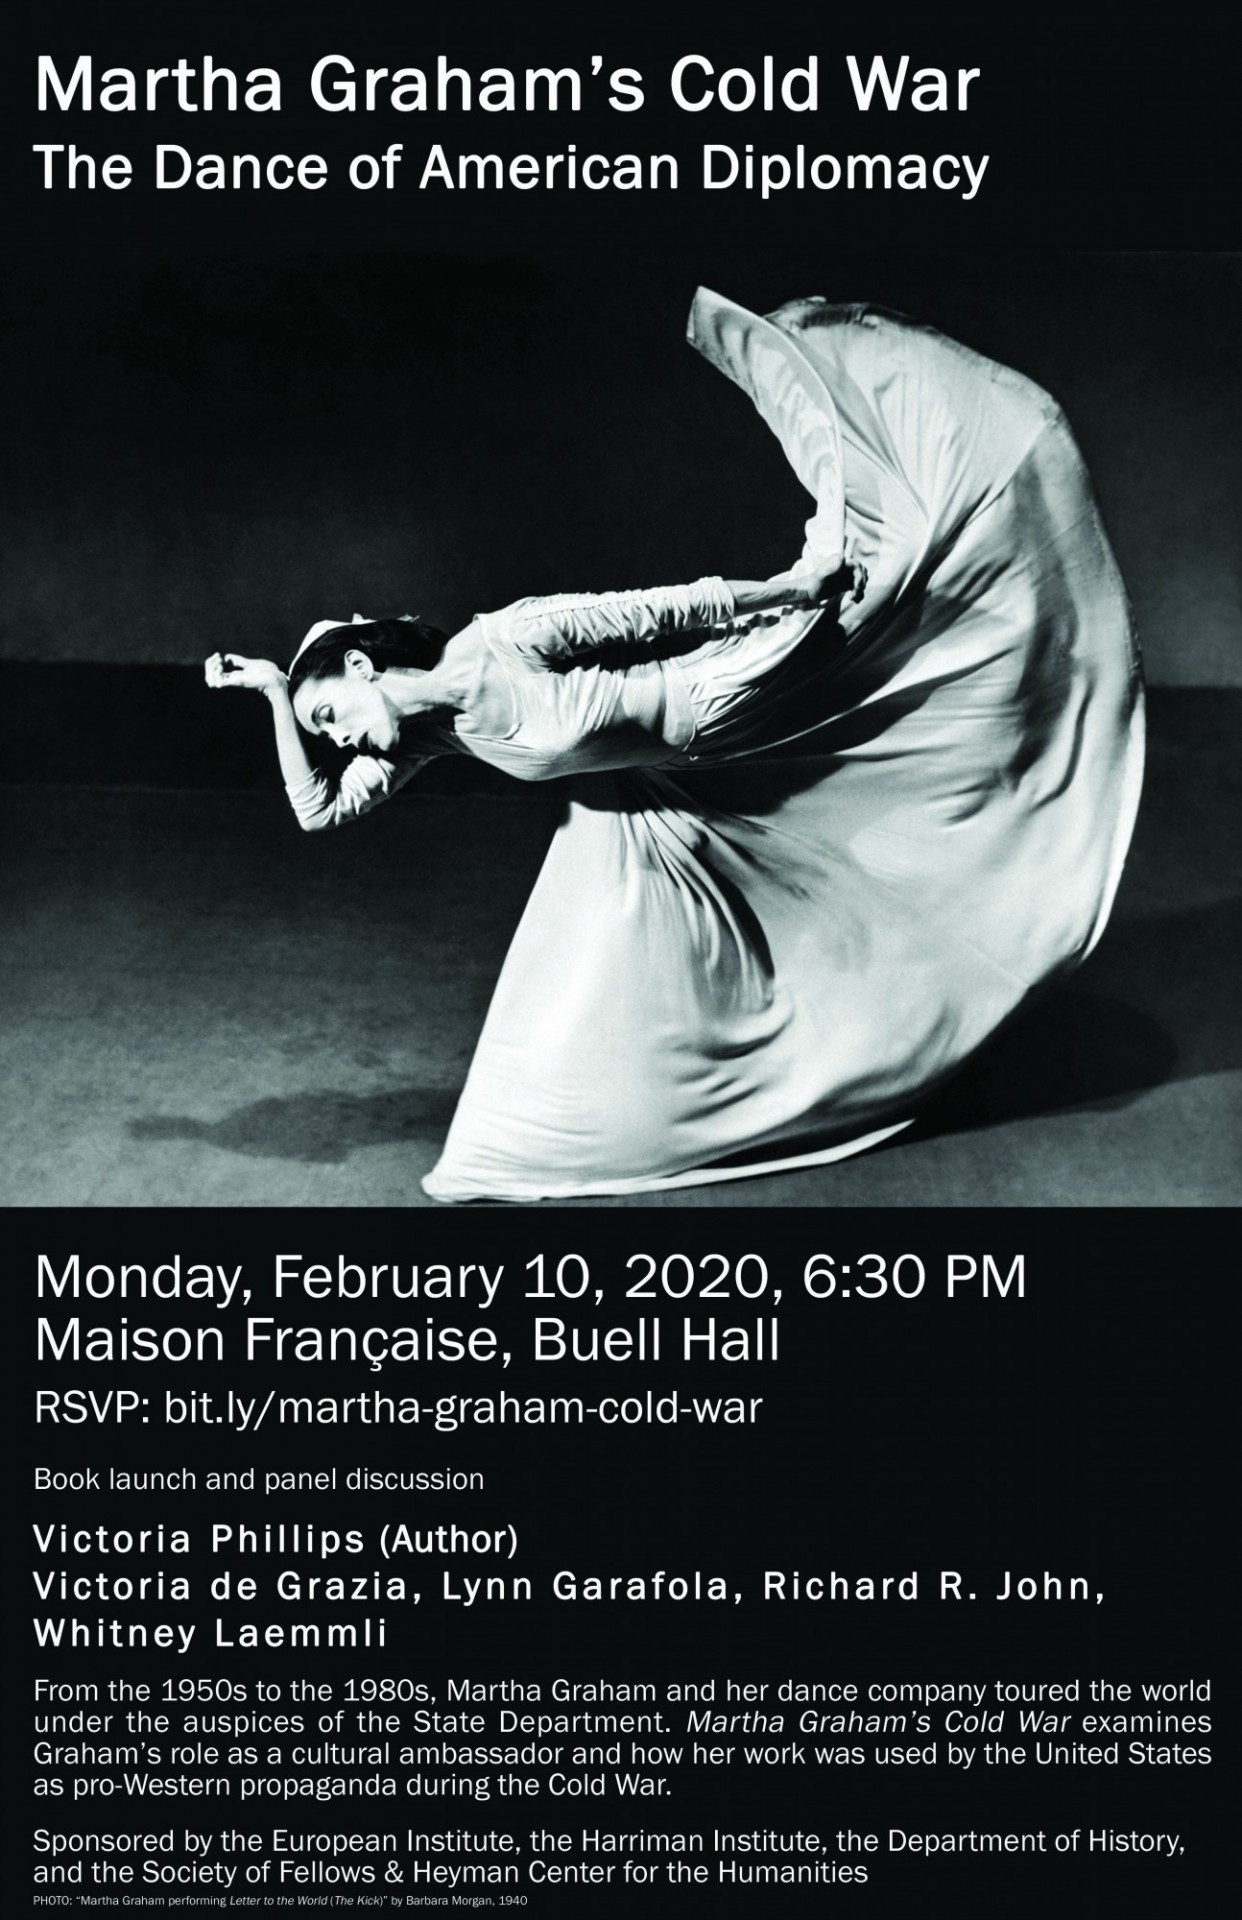 Flyer advertising book launch event for Martha Graham's Cold War: the Dance of American Diplomacy